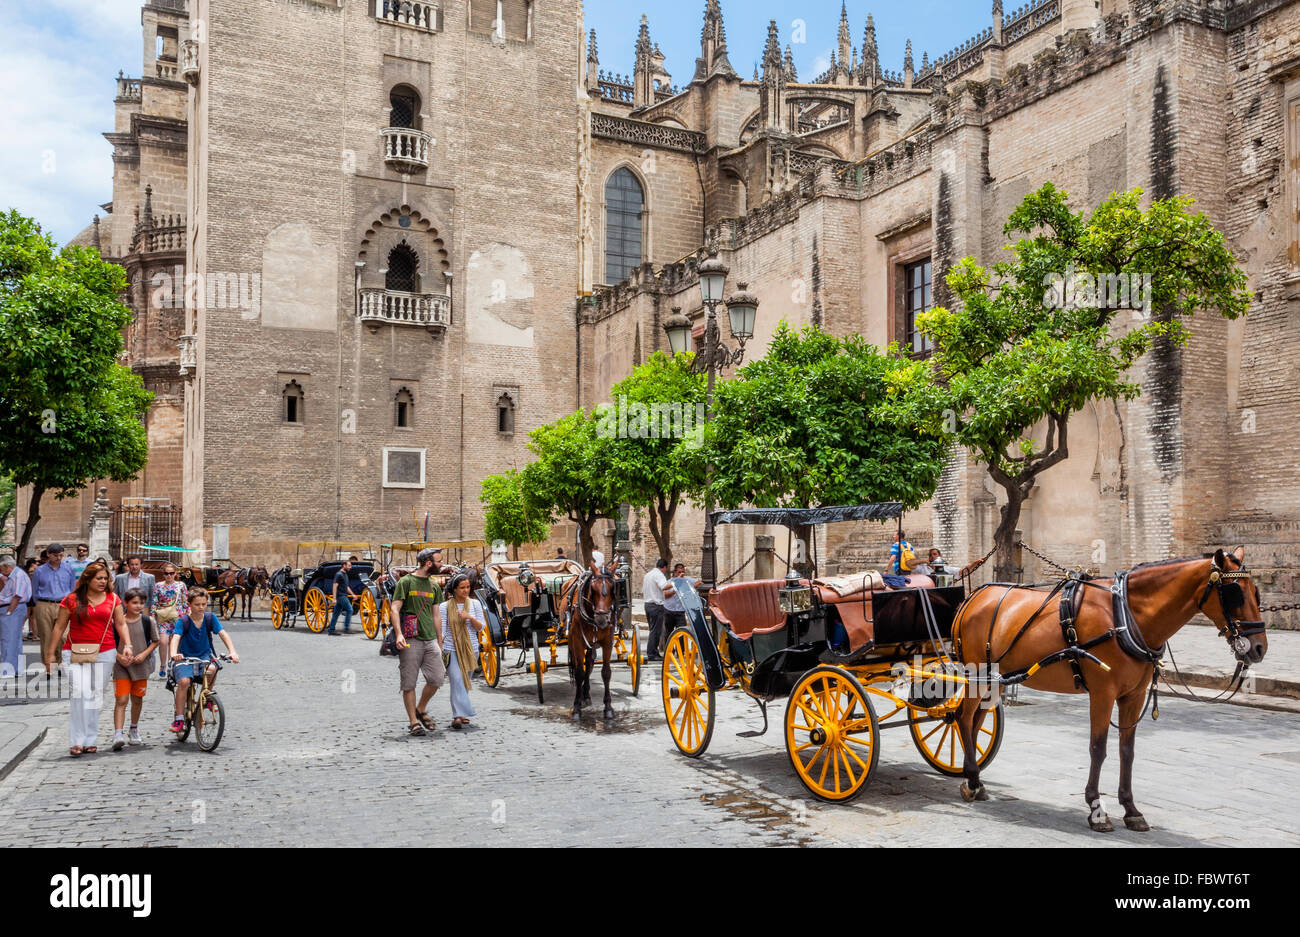 Spain, Andalusia, Province of Seville, Seville, horse-drawn carriages awaiting fares at Giralda Tower of Seville - Stock Image